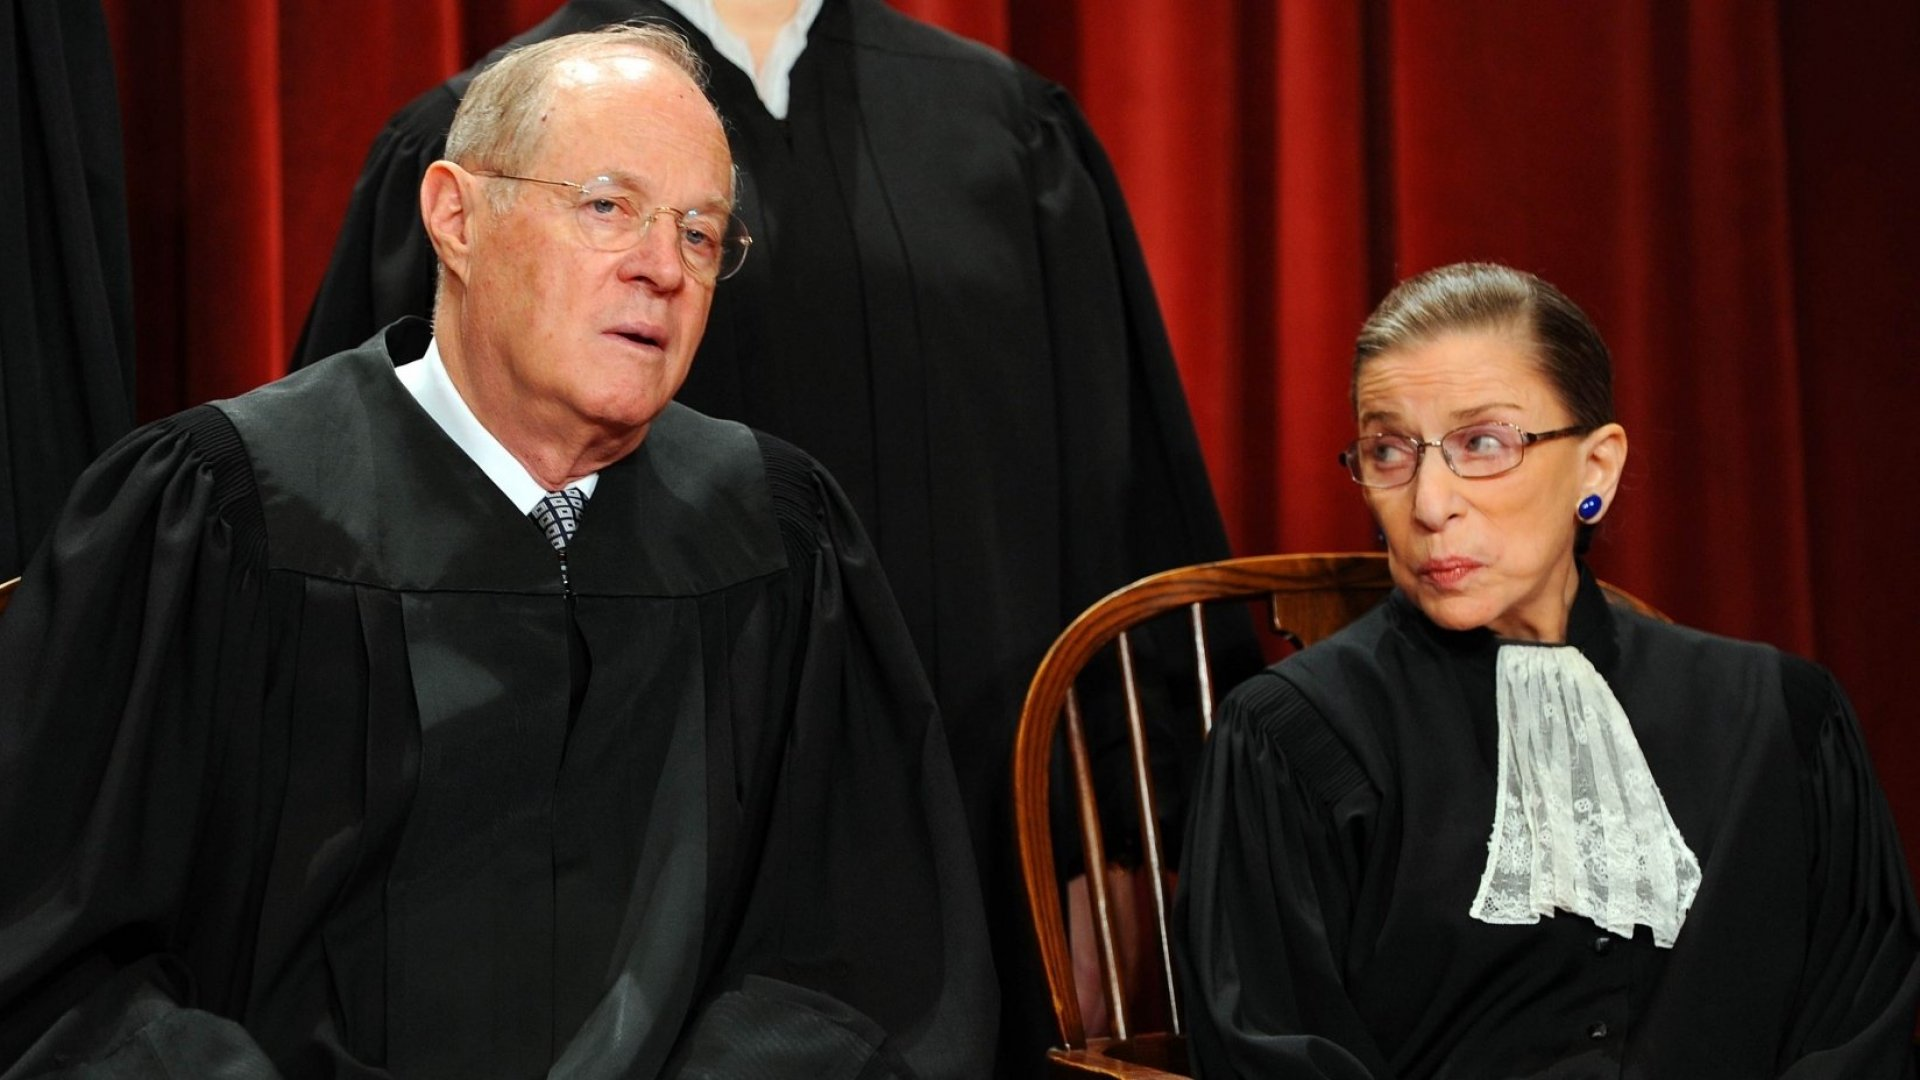 U.S. Supreme Court Associate Justice Anthony M. Kennedy (L) and Associate Justice Ruth Bader Ginsburg participate in an official photo session on October 8, 2010, at the Supreme Court in Washington, D.C.